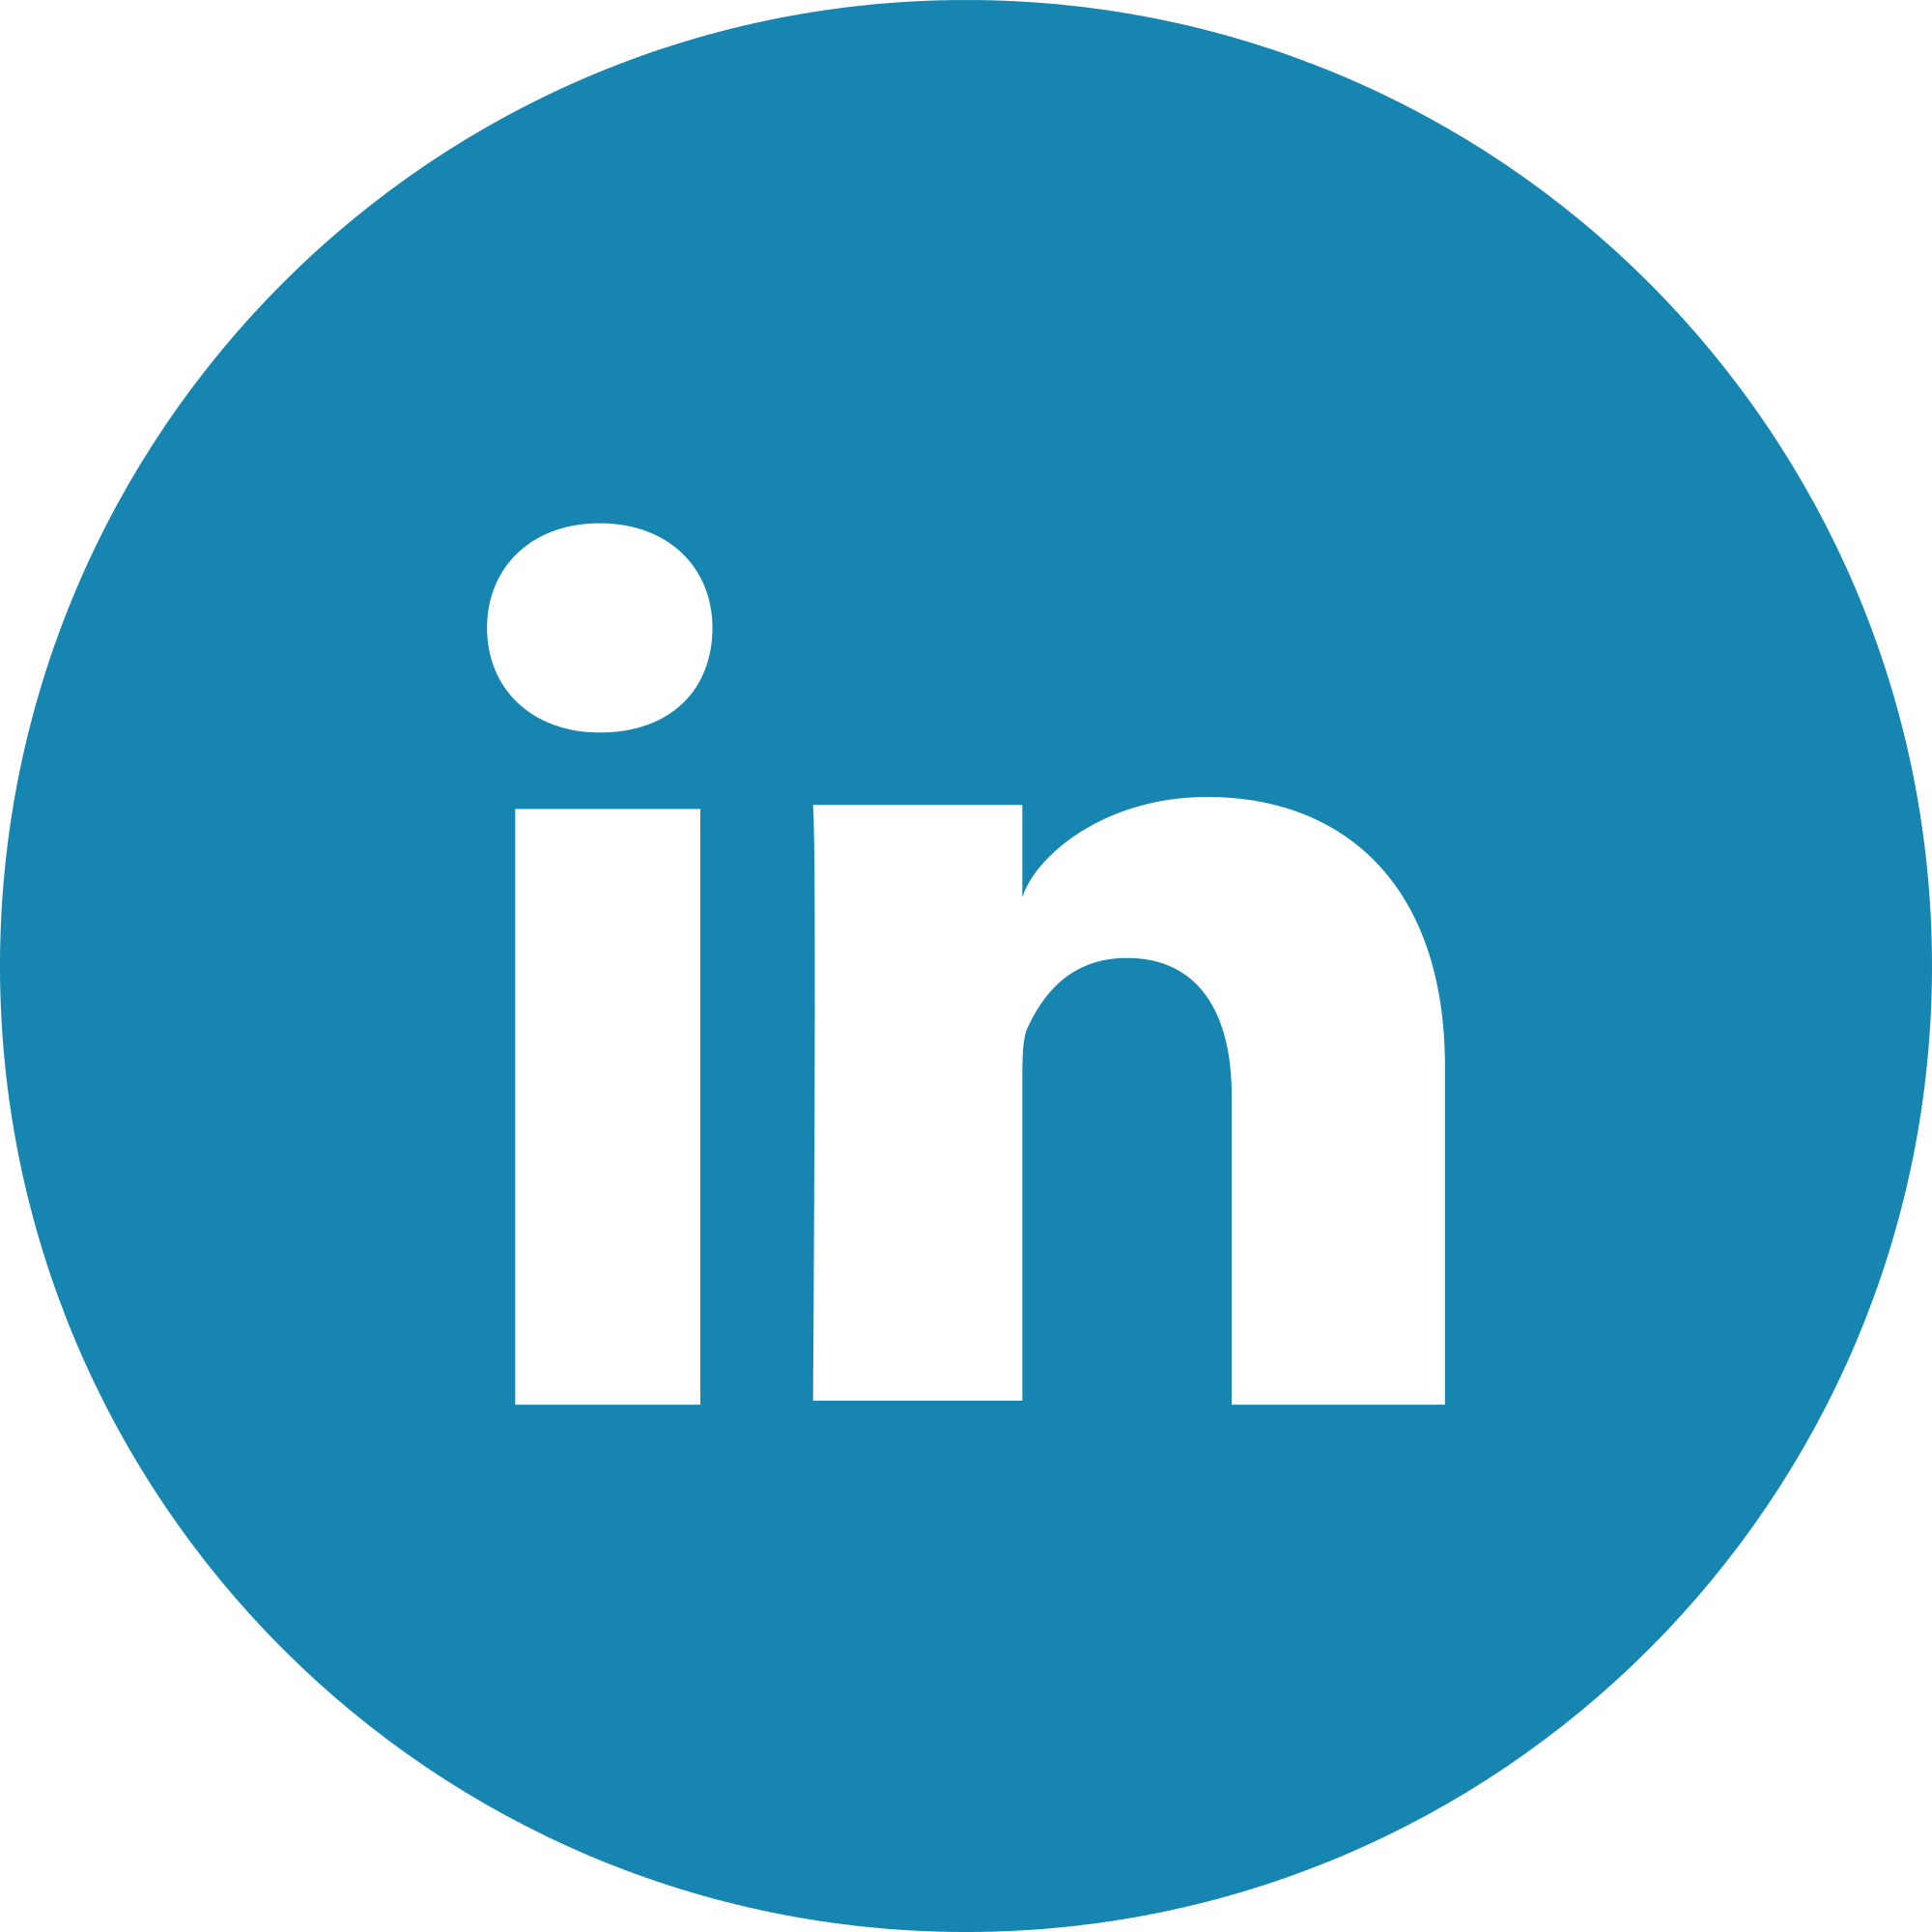 Linkedin Logo in Round blue with shadow